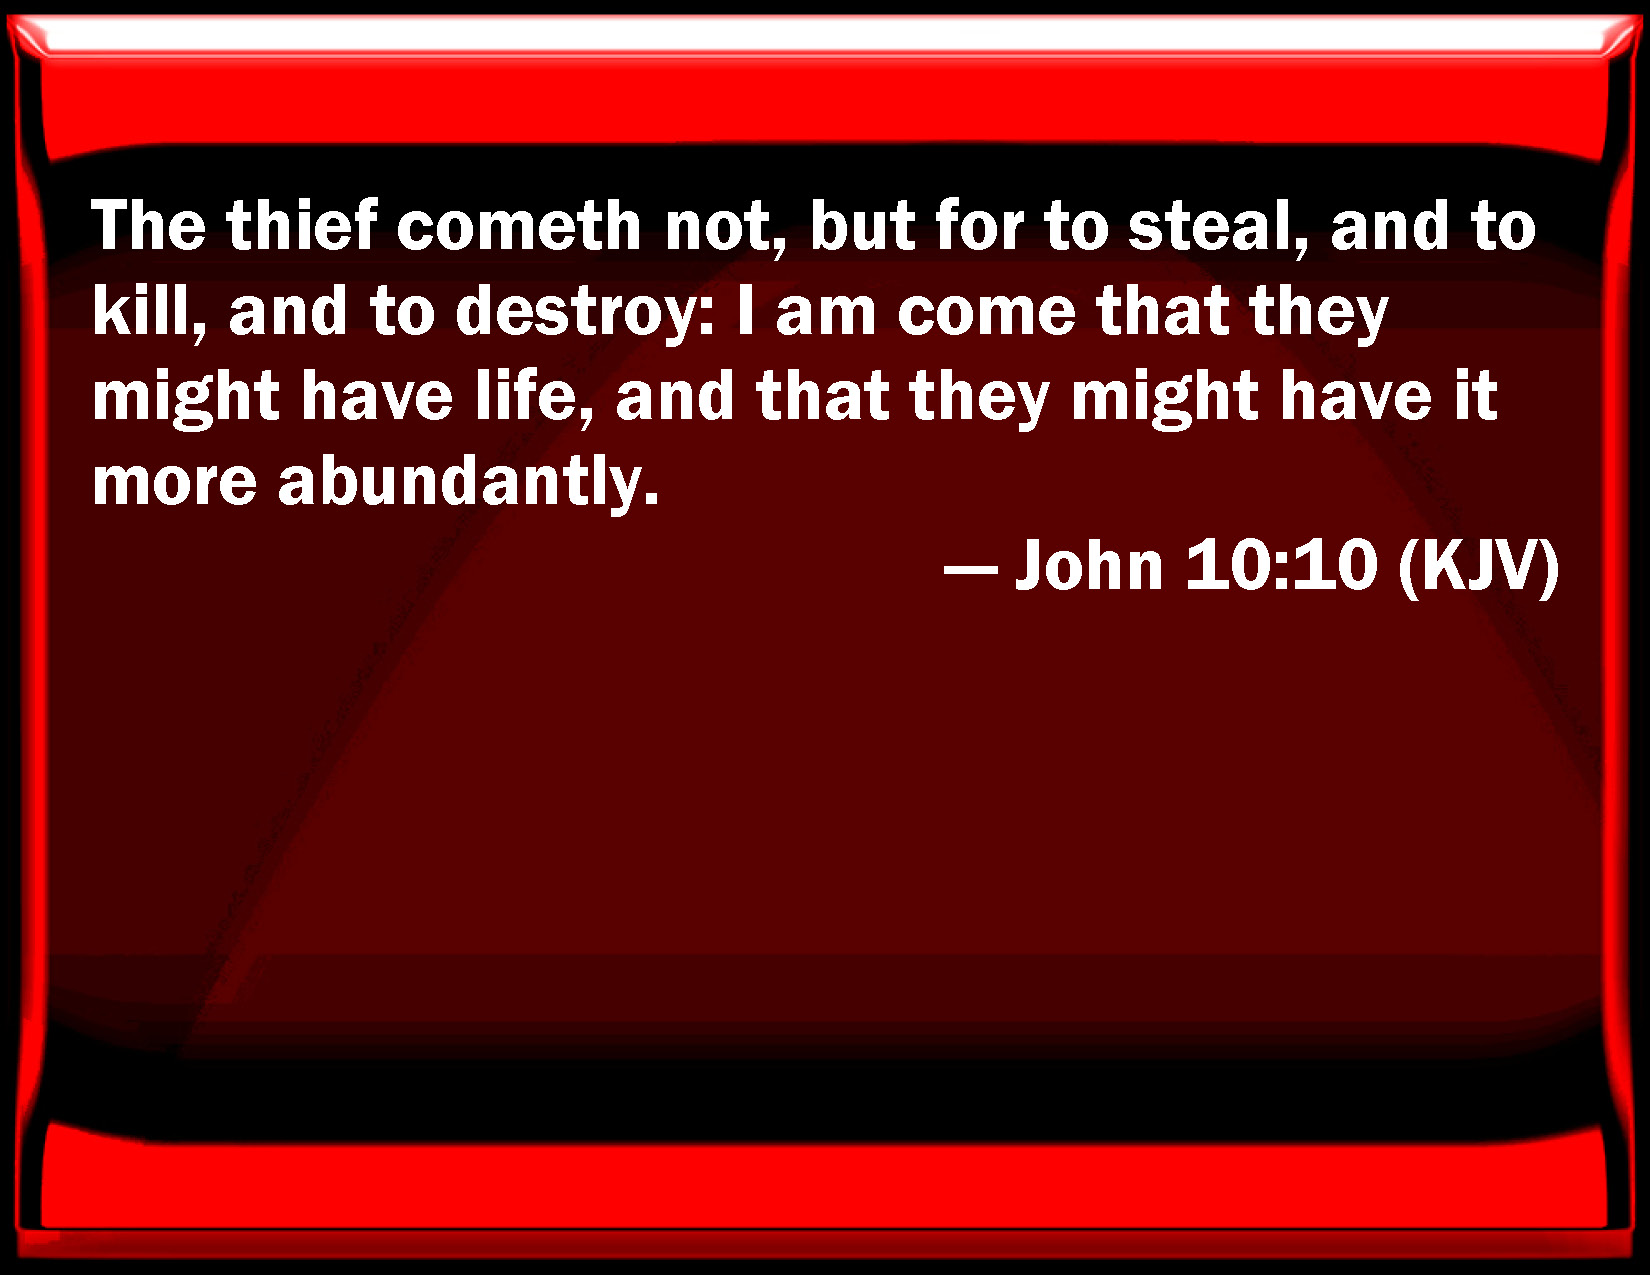 John 10:10 The thief comes not, but for to steal, and to